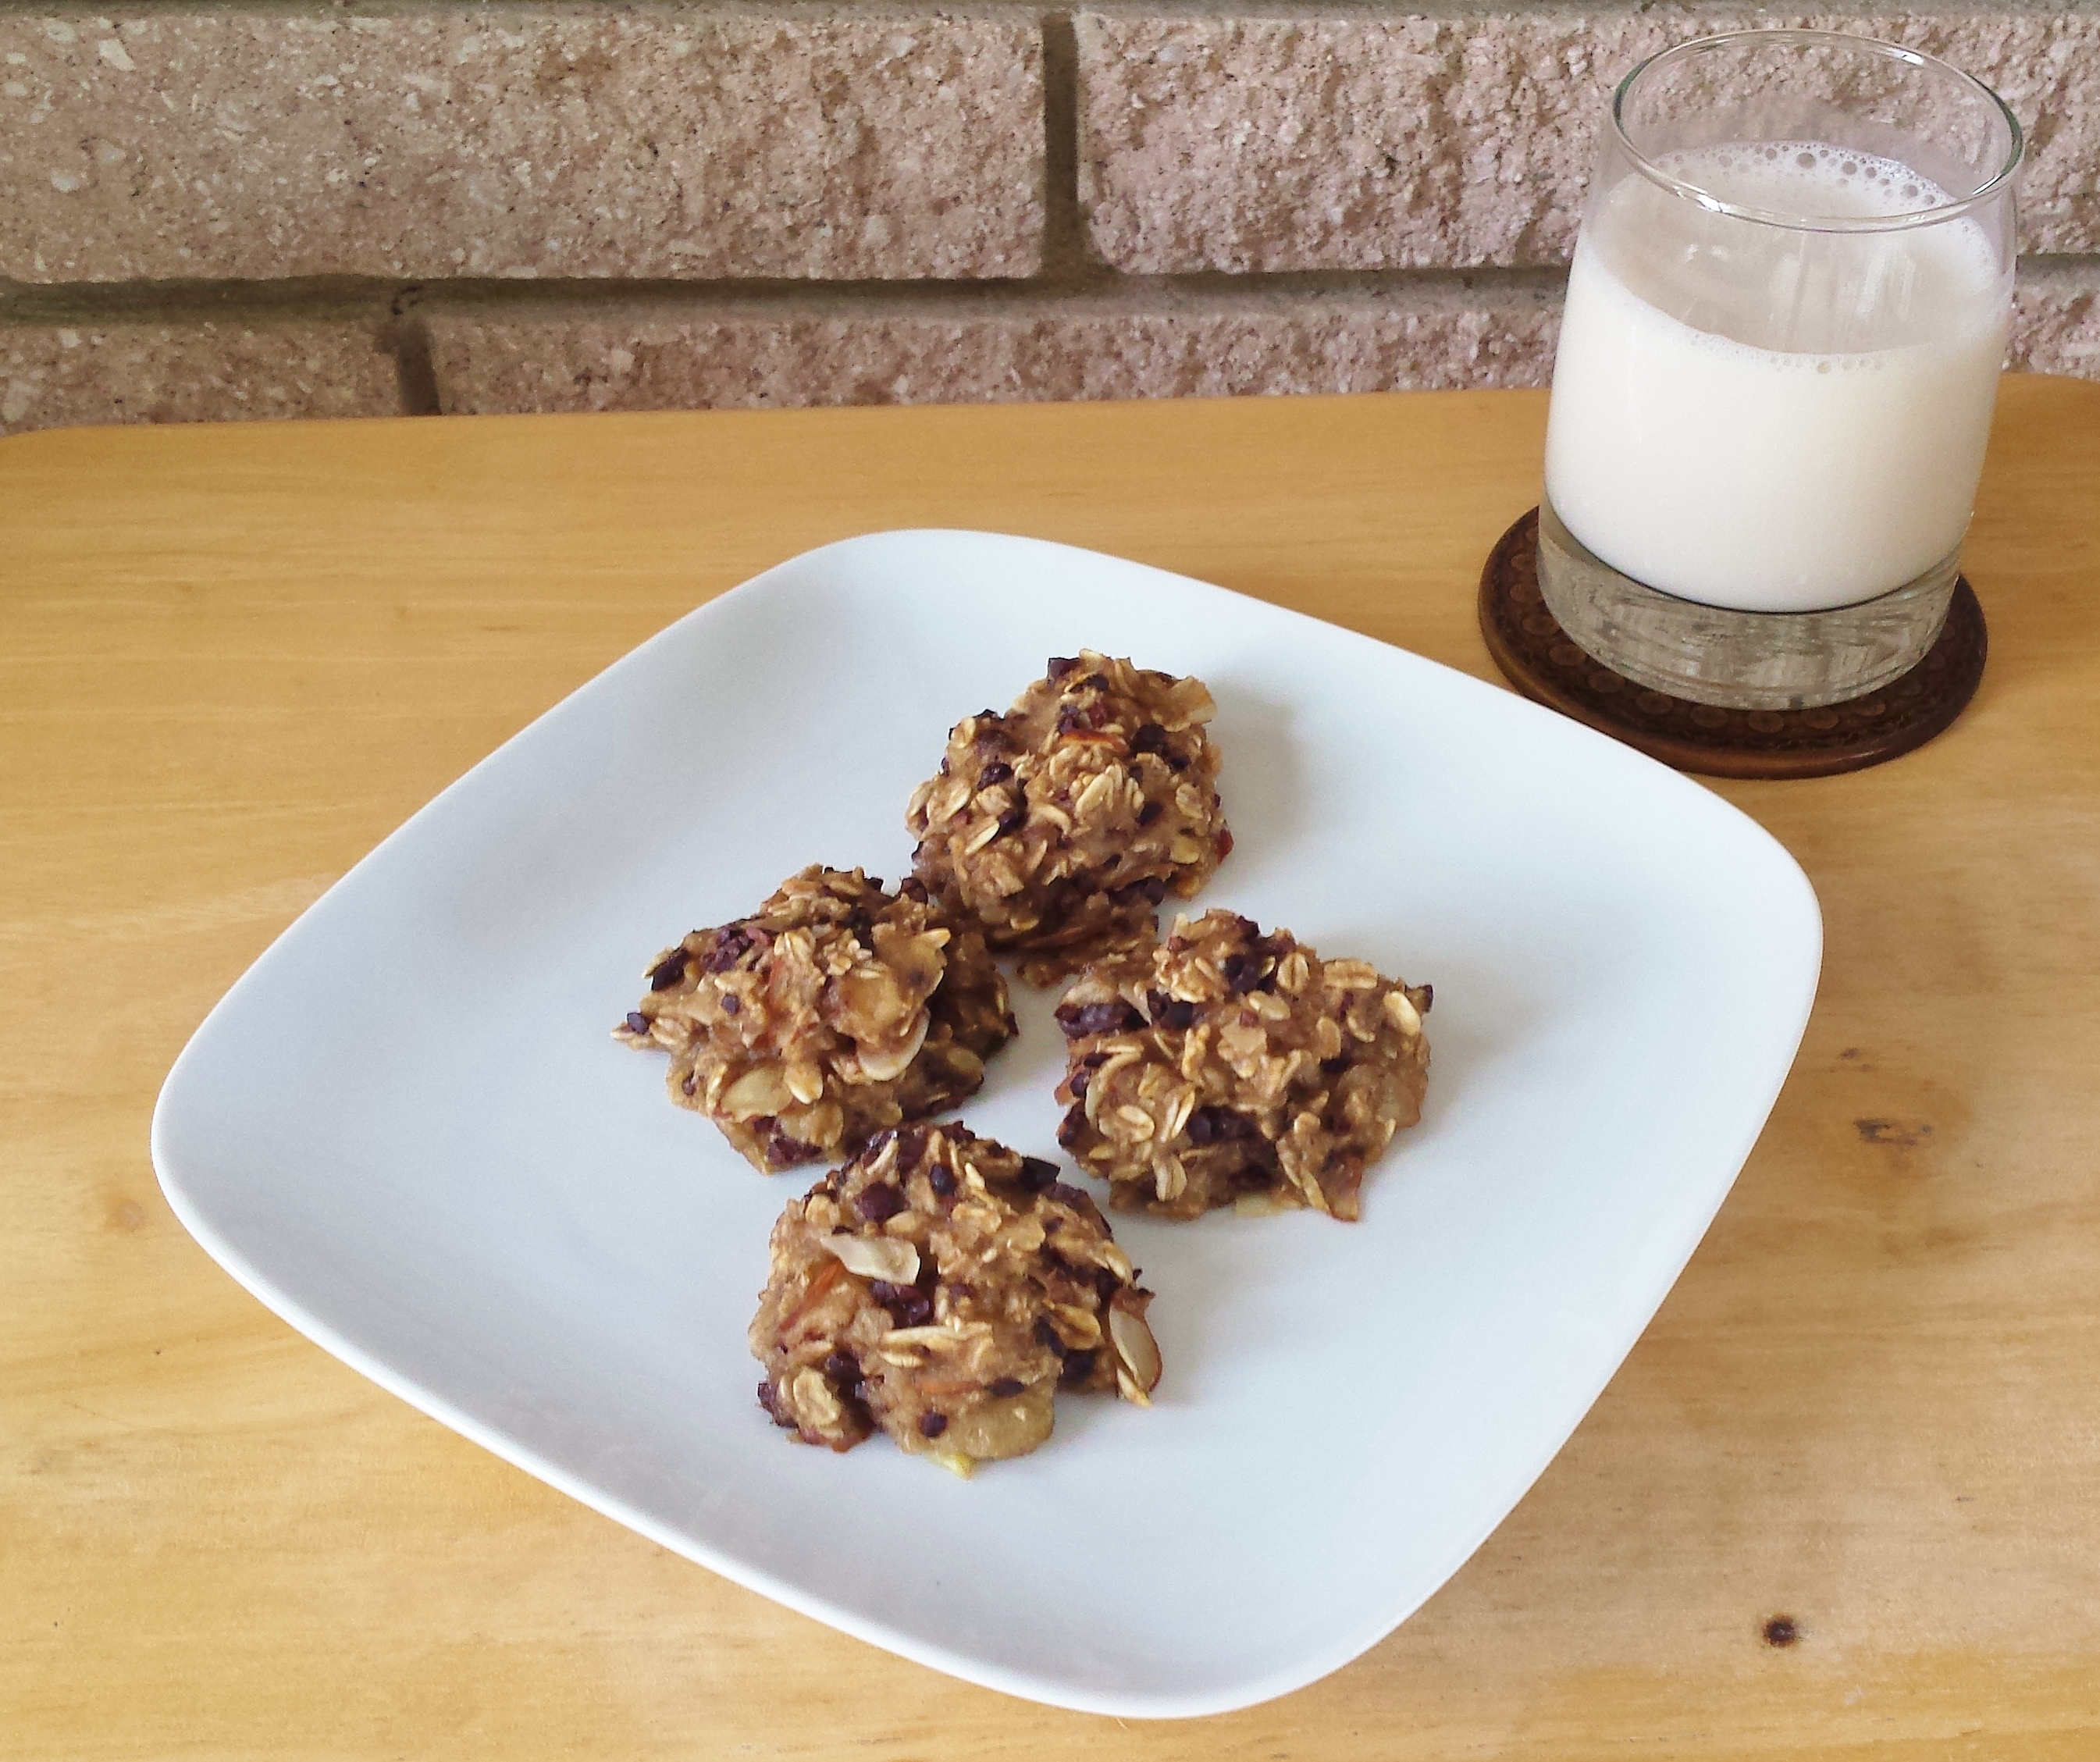 Two-Ingredient Banana Oatmeal Cookies with Raw Cacao Nibs and Sliced Almonds